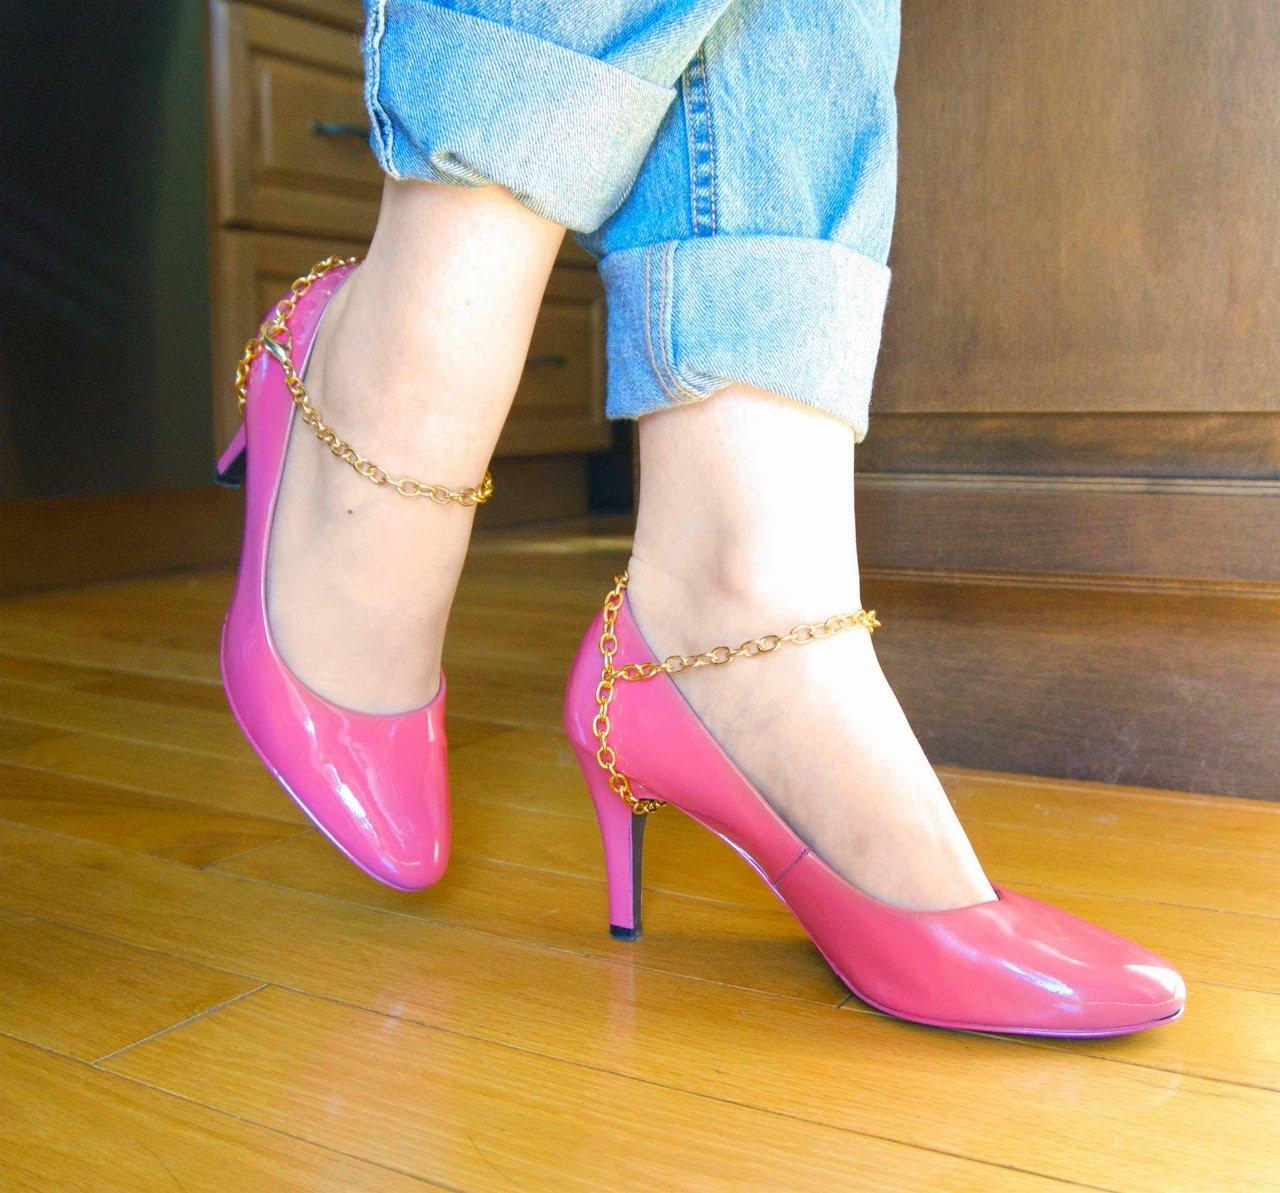 DIY To Make Your Old High Heels Look Fabulous